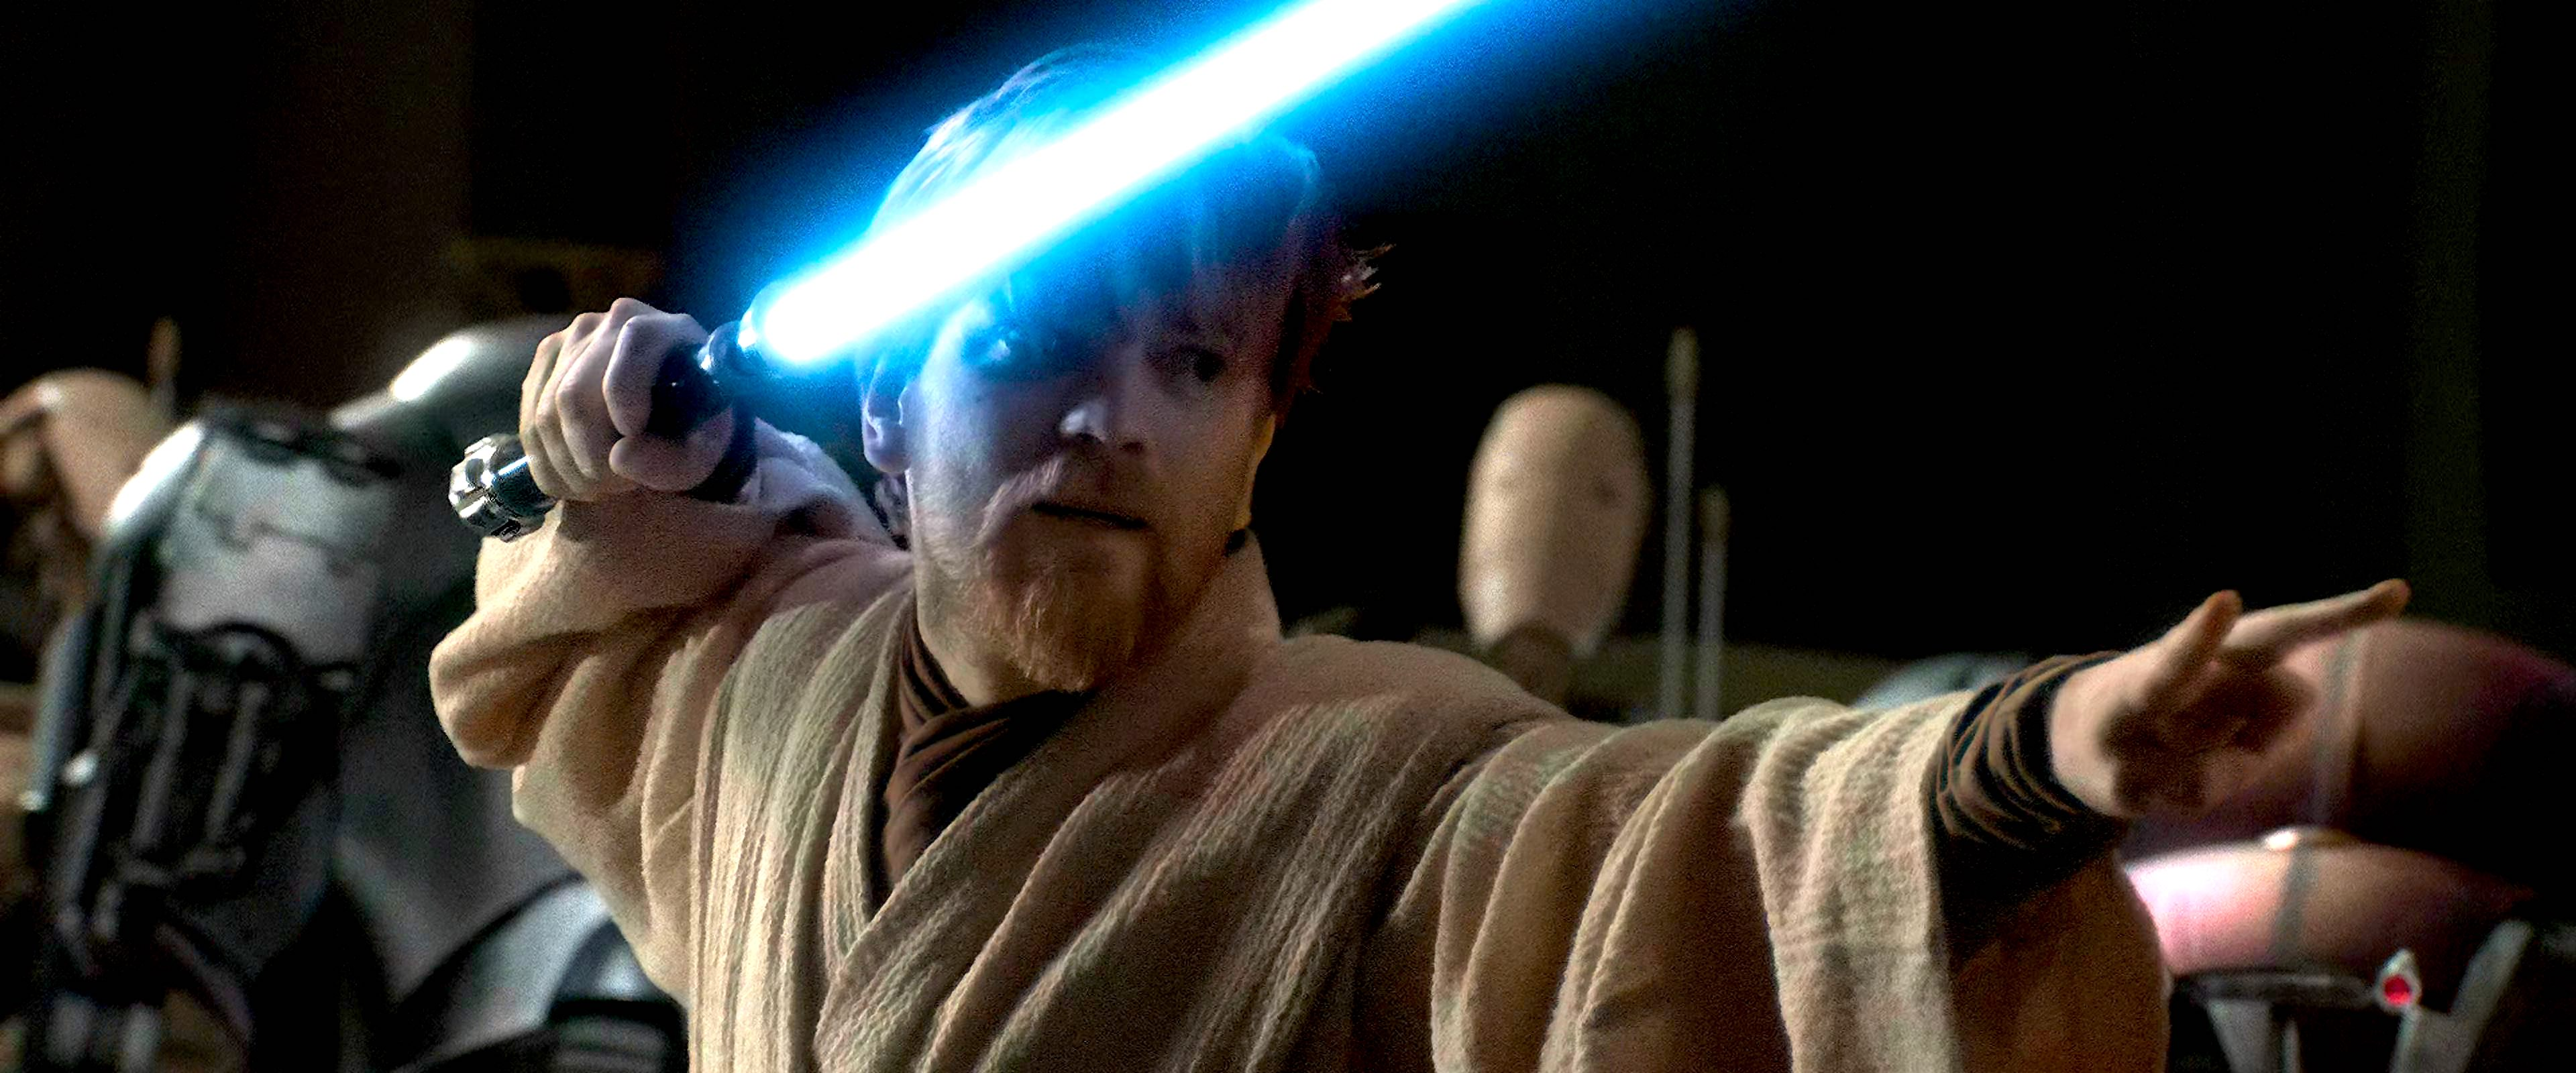 Obi-Wan fighting General Grievous in Revenge of the Sith